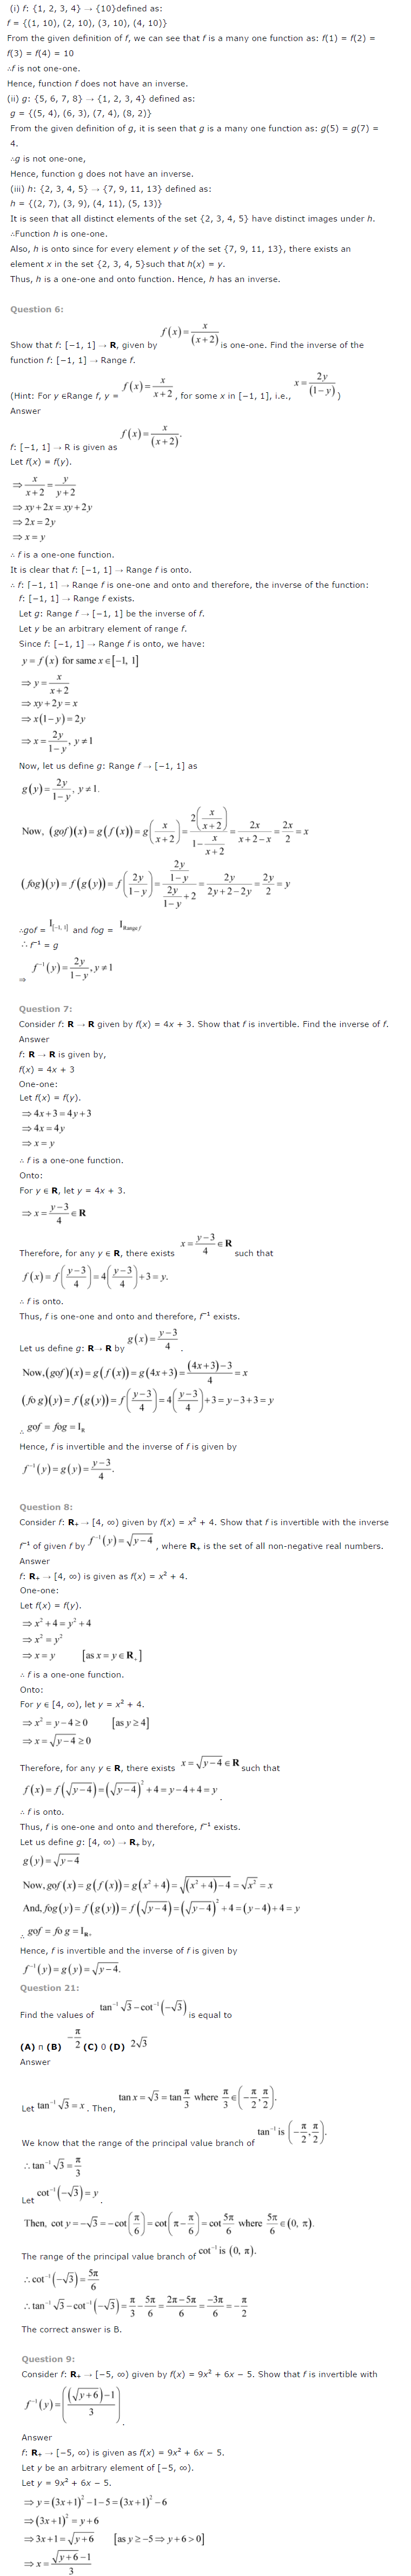 NCERT Solutions For Class 12 Maths Chapter 1 Relations and Functions-6